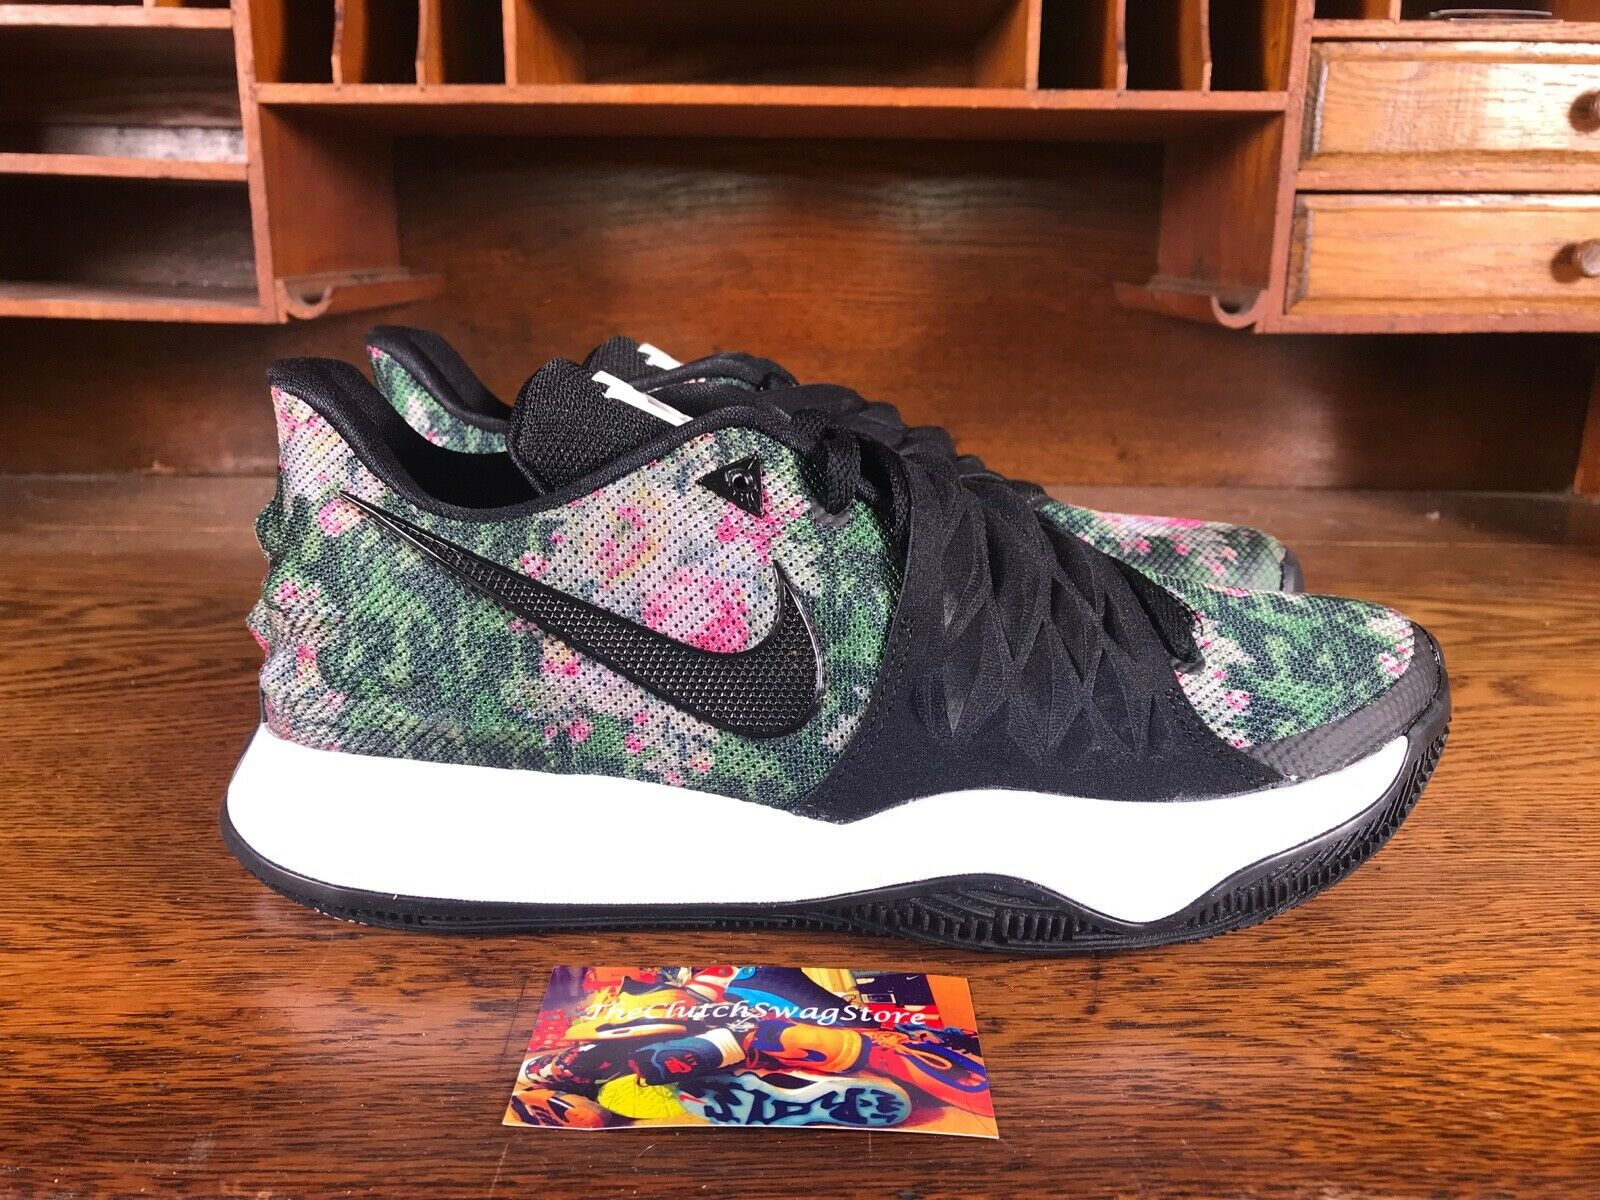 Nike Kyrie Low Black Floral Print Mens Kyrie Irving shoes AO8979 002 NEW Size 10